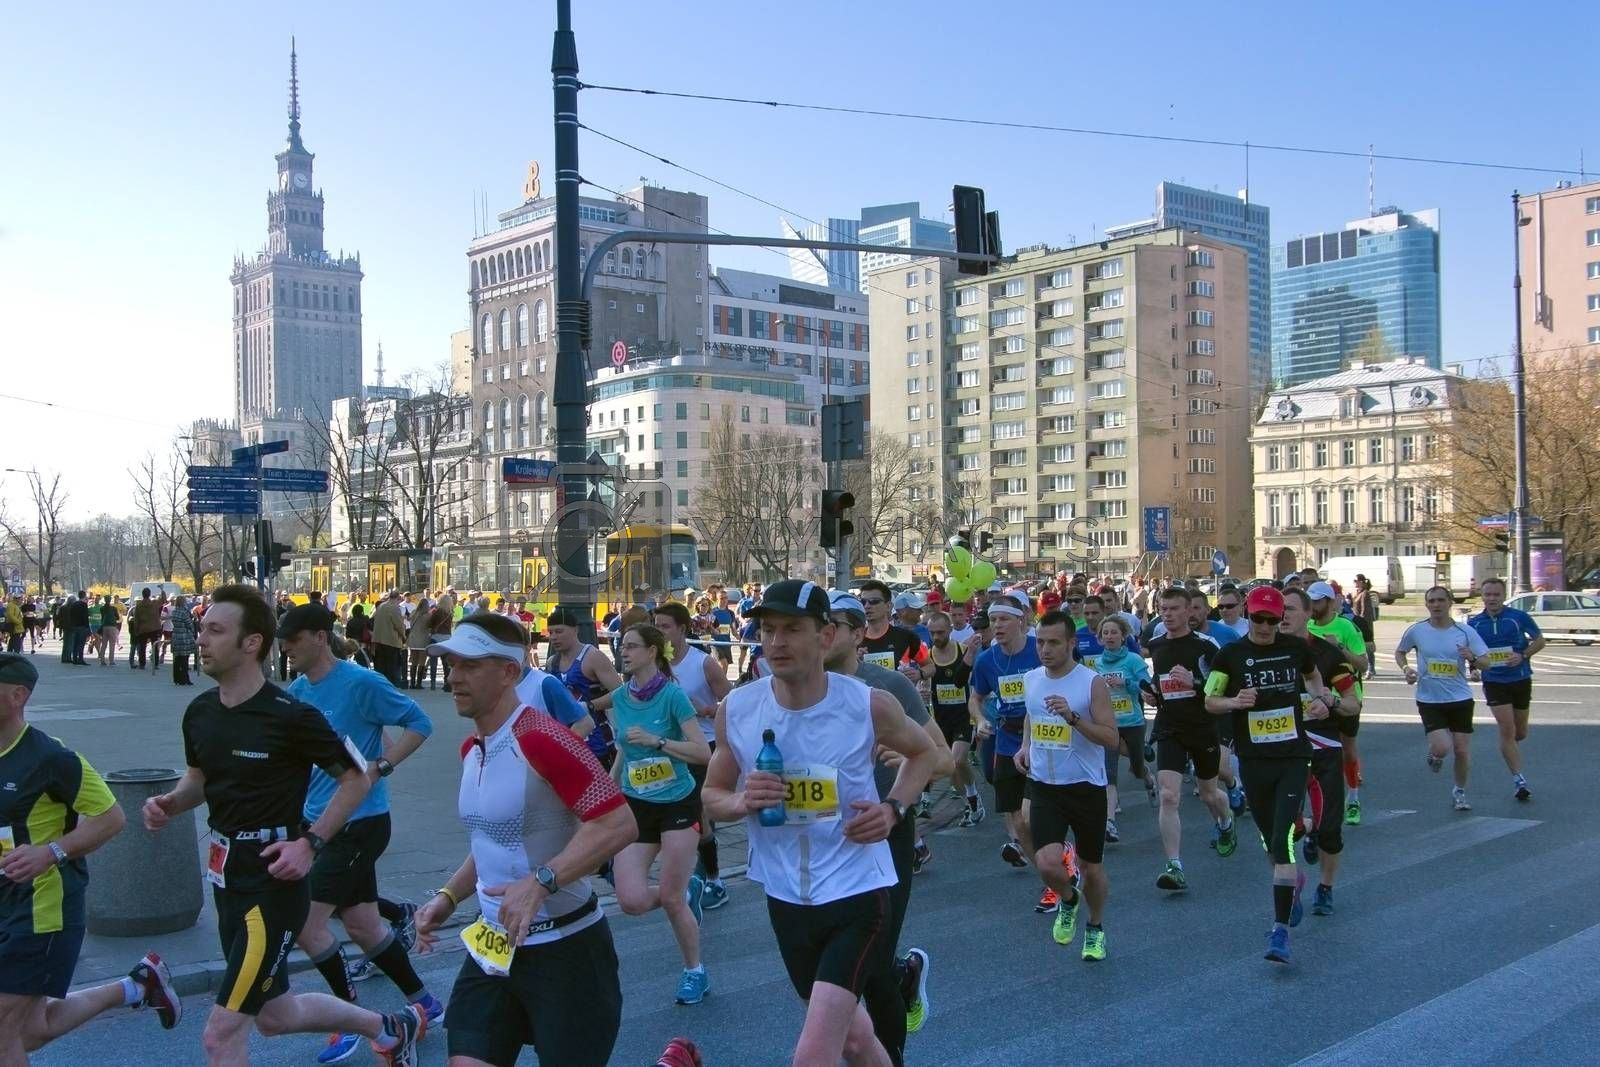 Warsaw, Poland – March  30, 2014: Participants of the 9th Warsaw Half Marathon in the city center